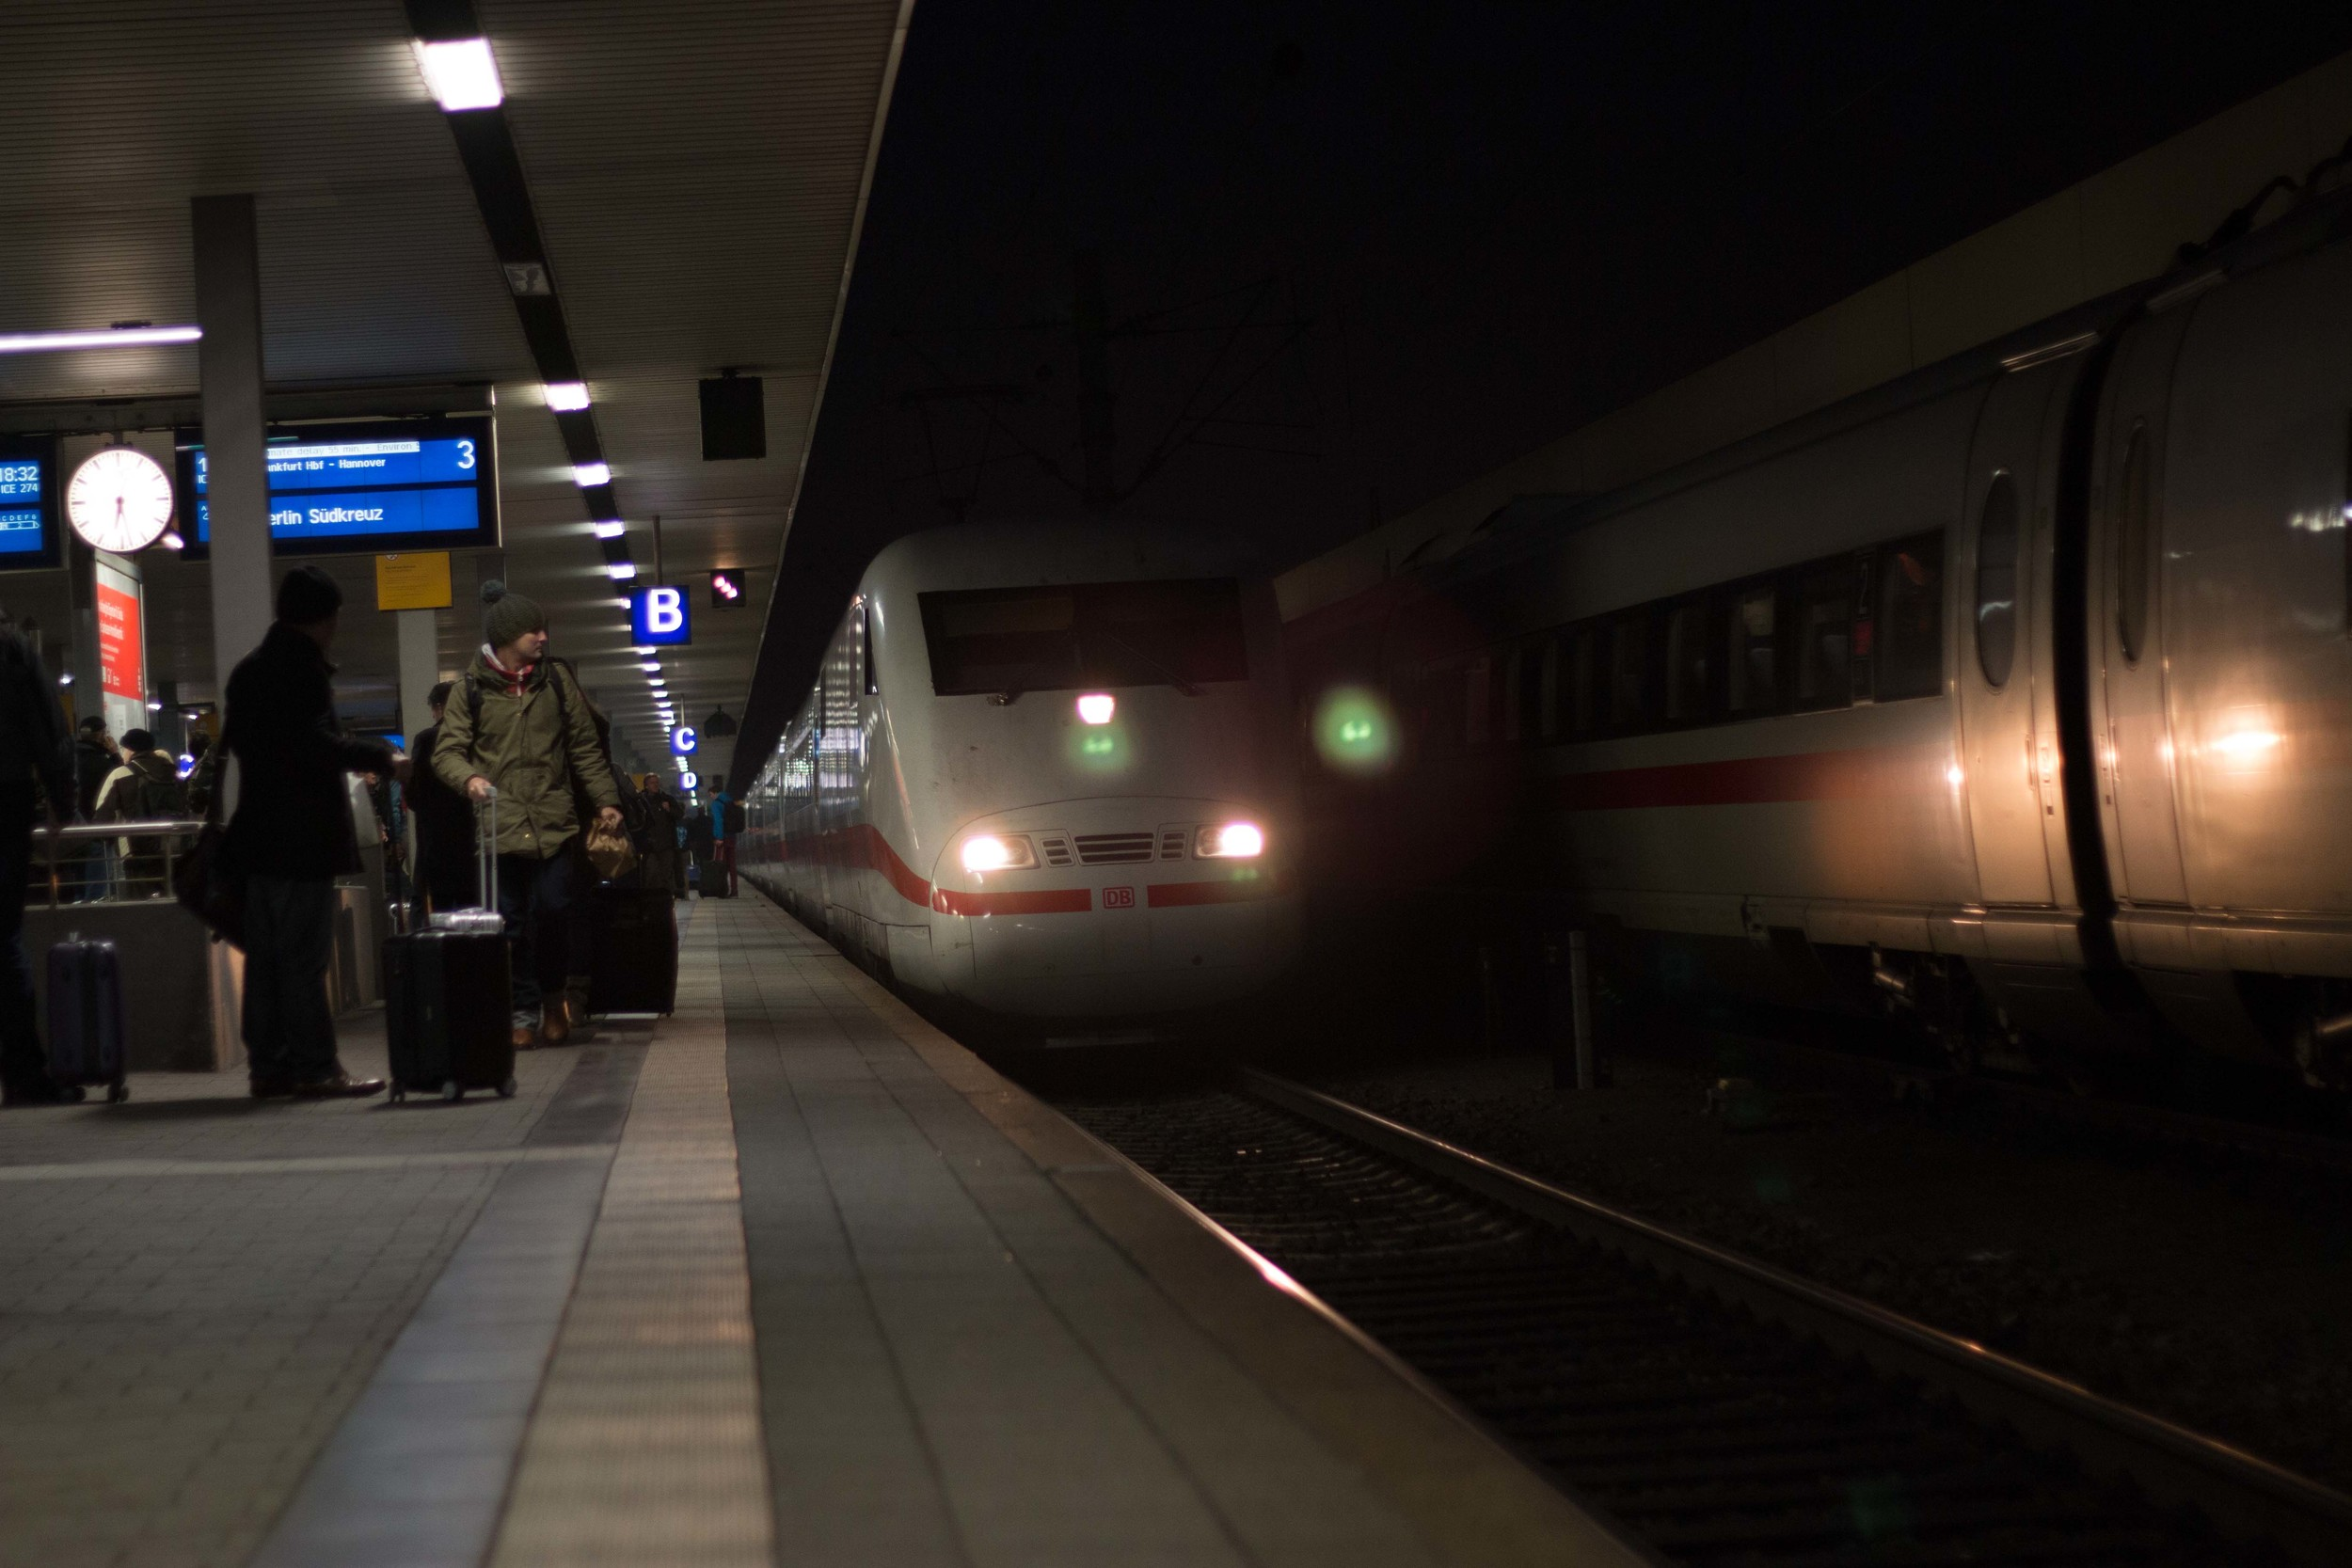 An ICE train pulling in to the Mannheim train Station